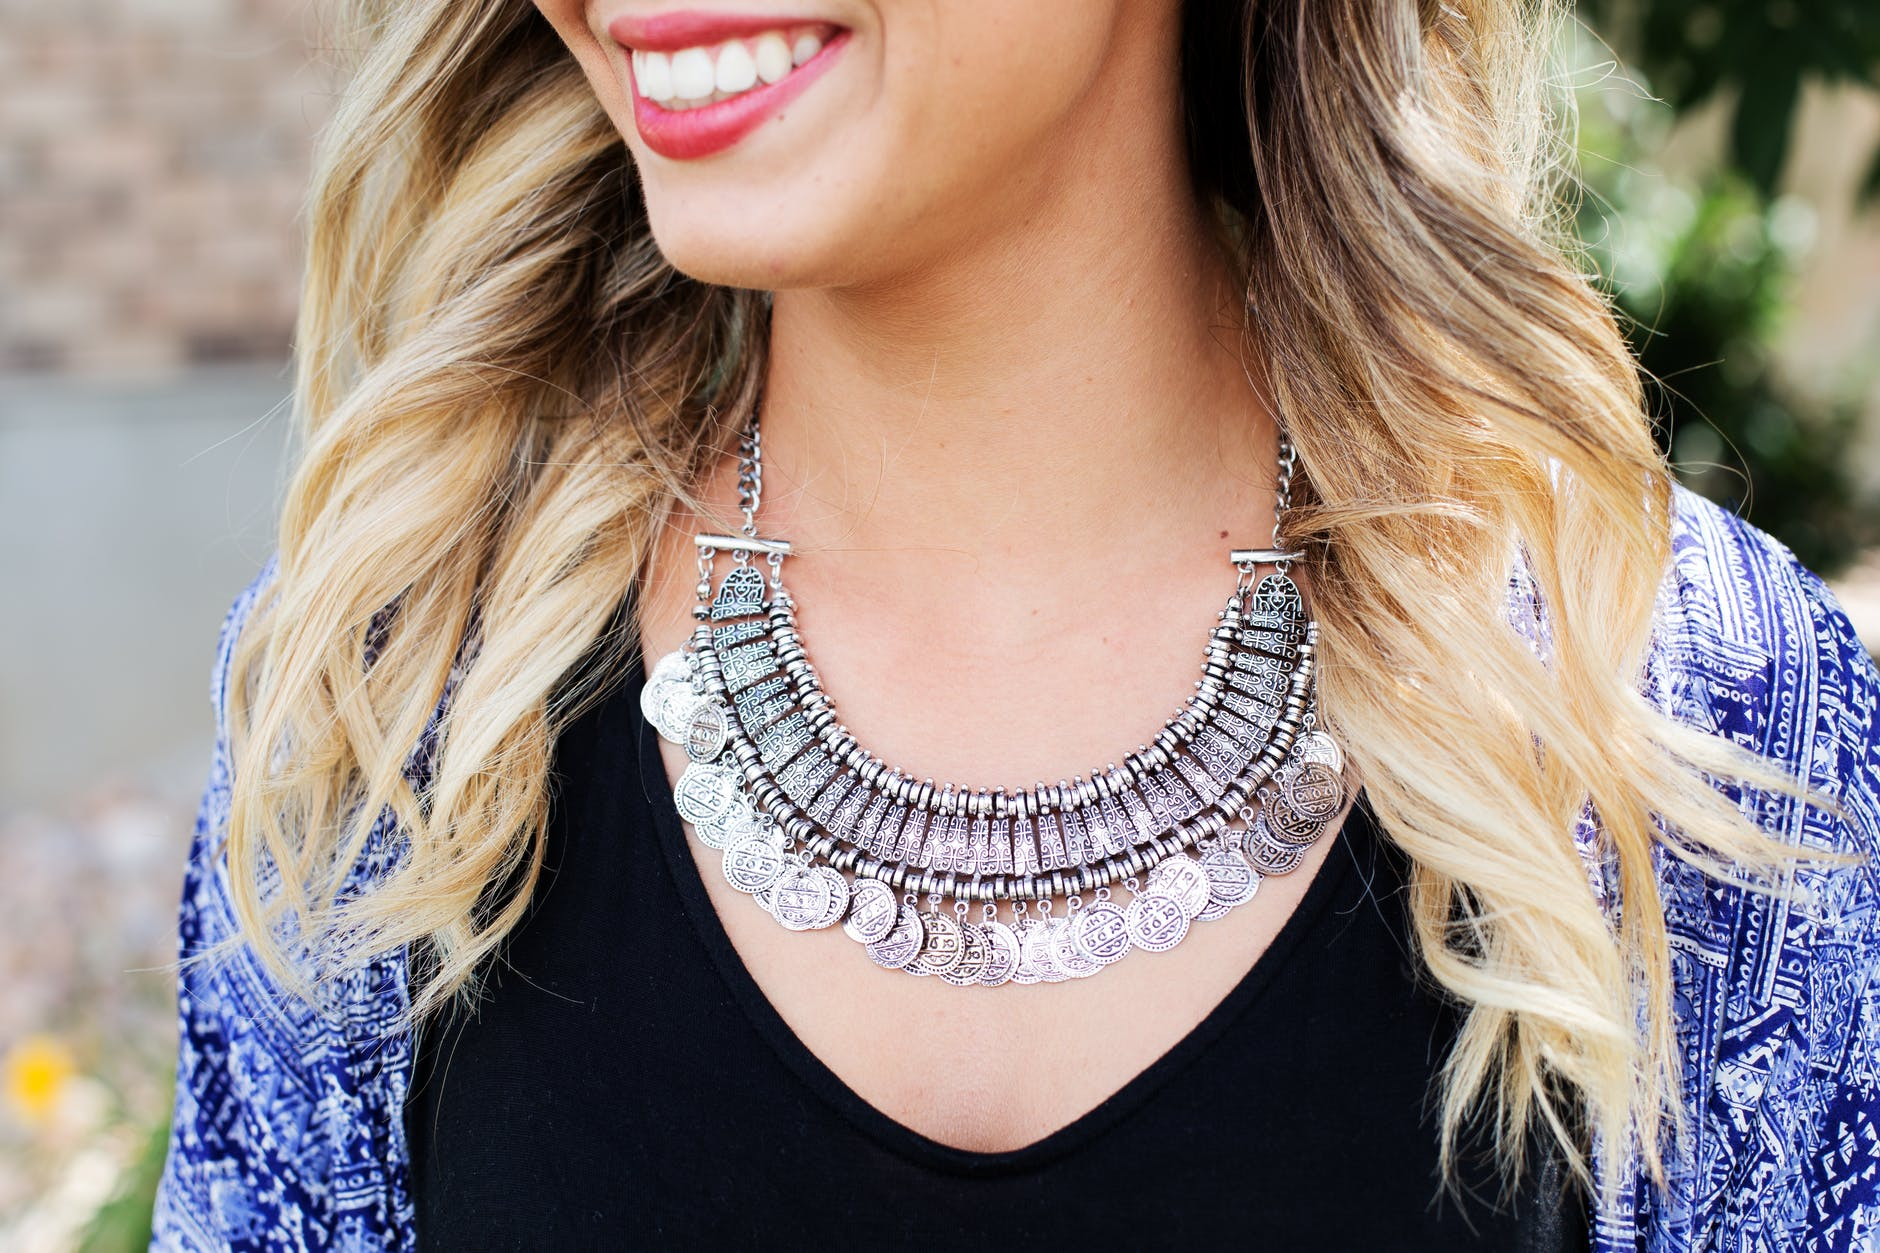 Accessorize your ensemble with chunky silver accessories